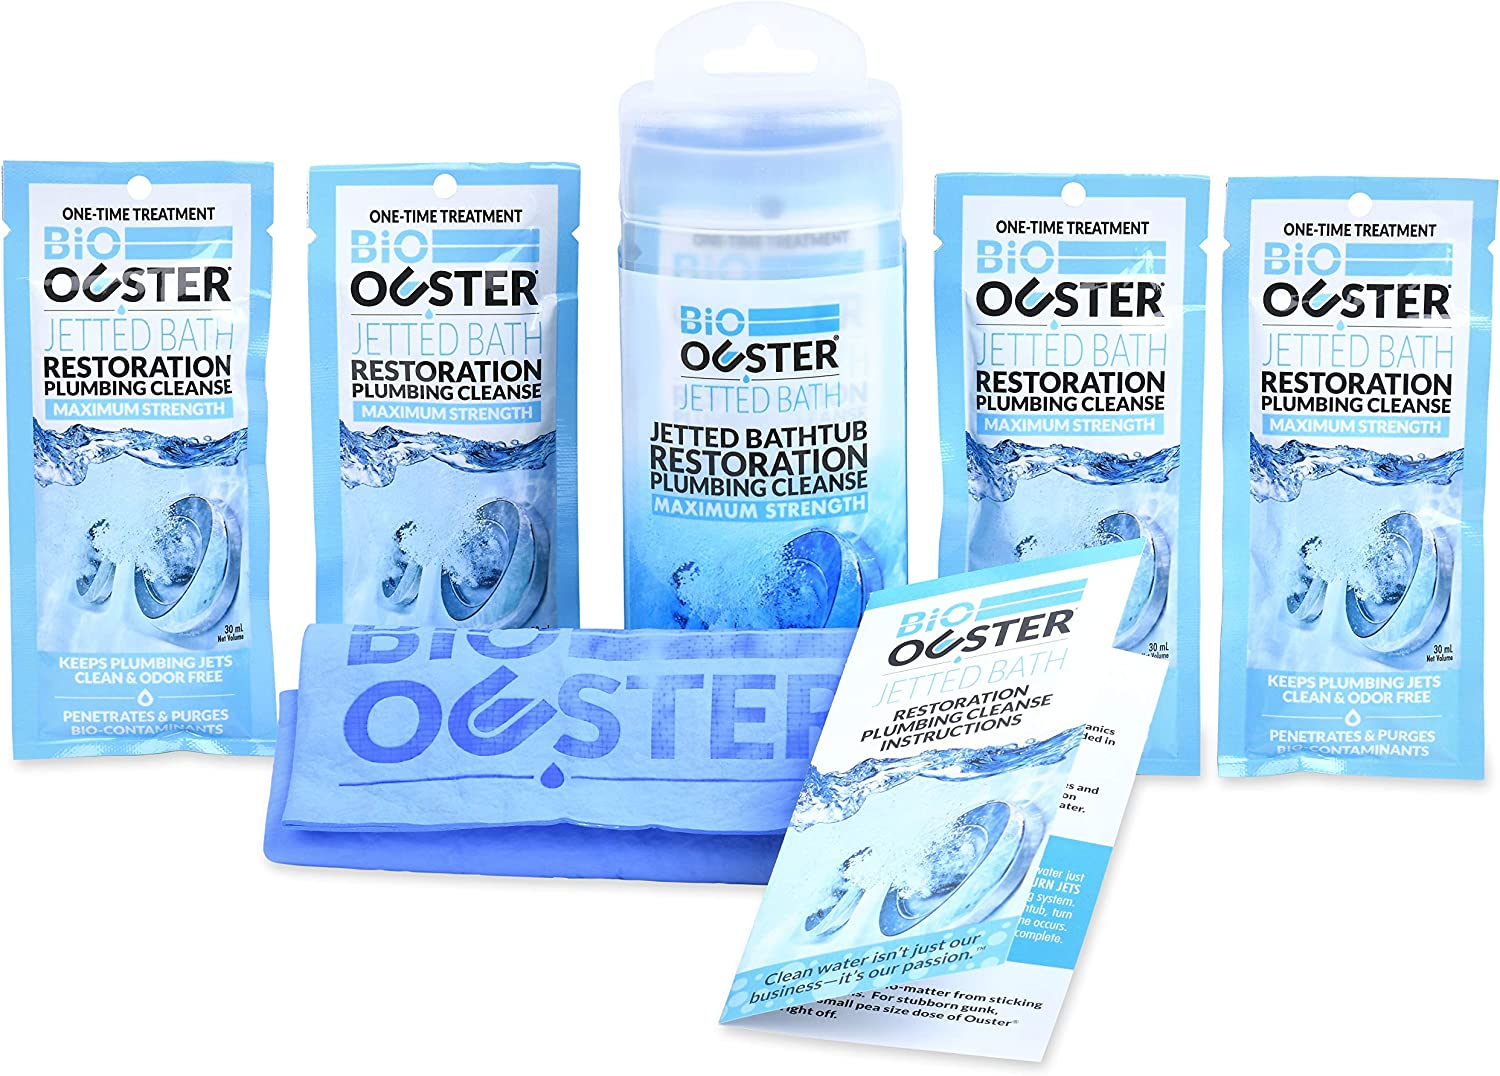 3. Bio Ouster Jetted Bath Restoration Kit